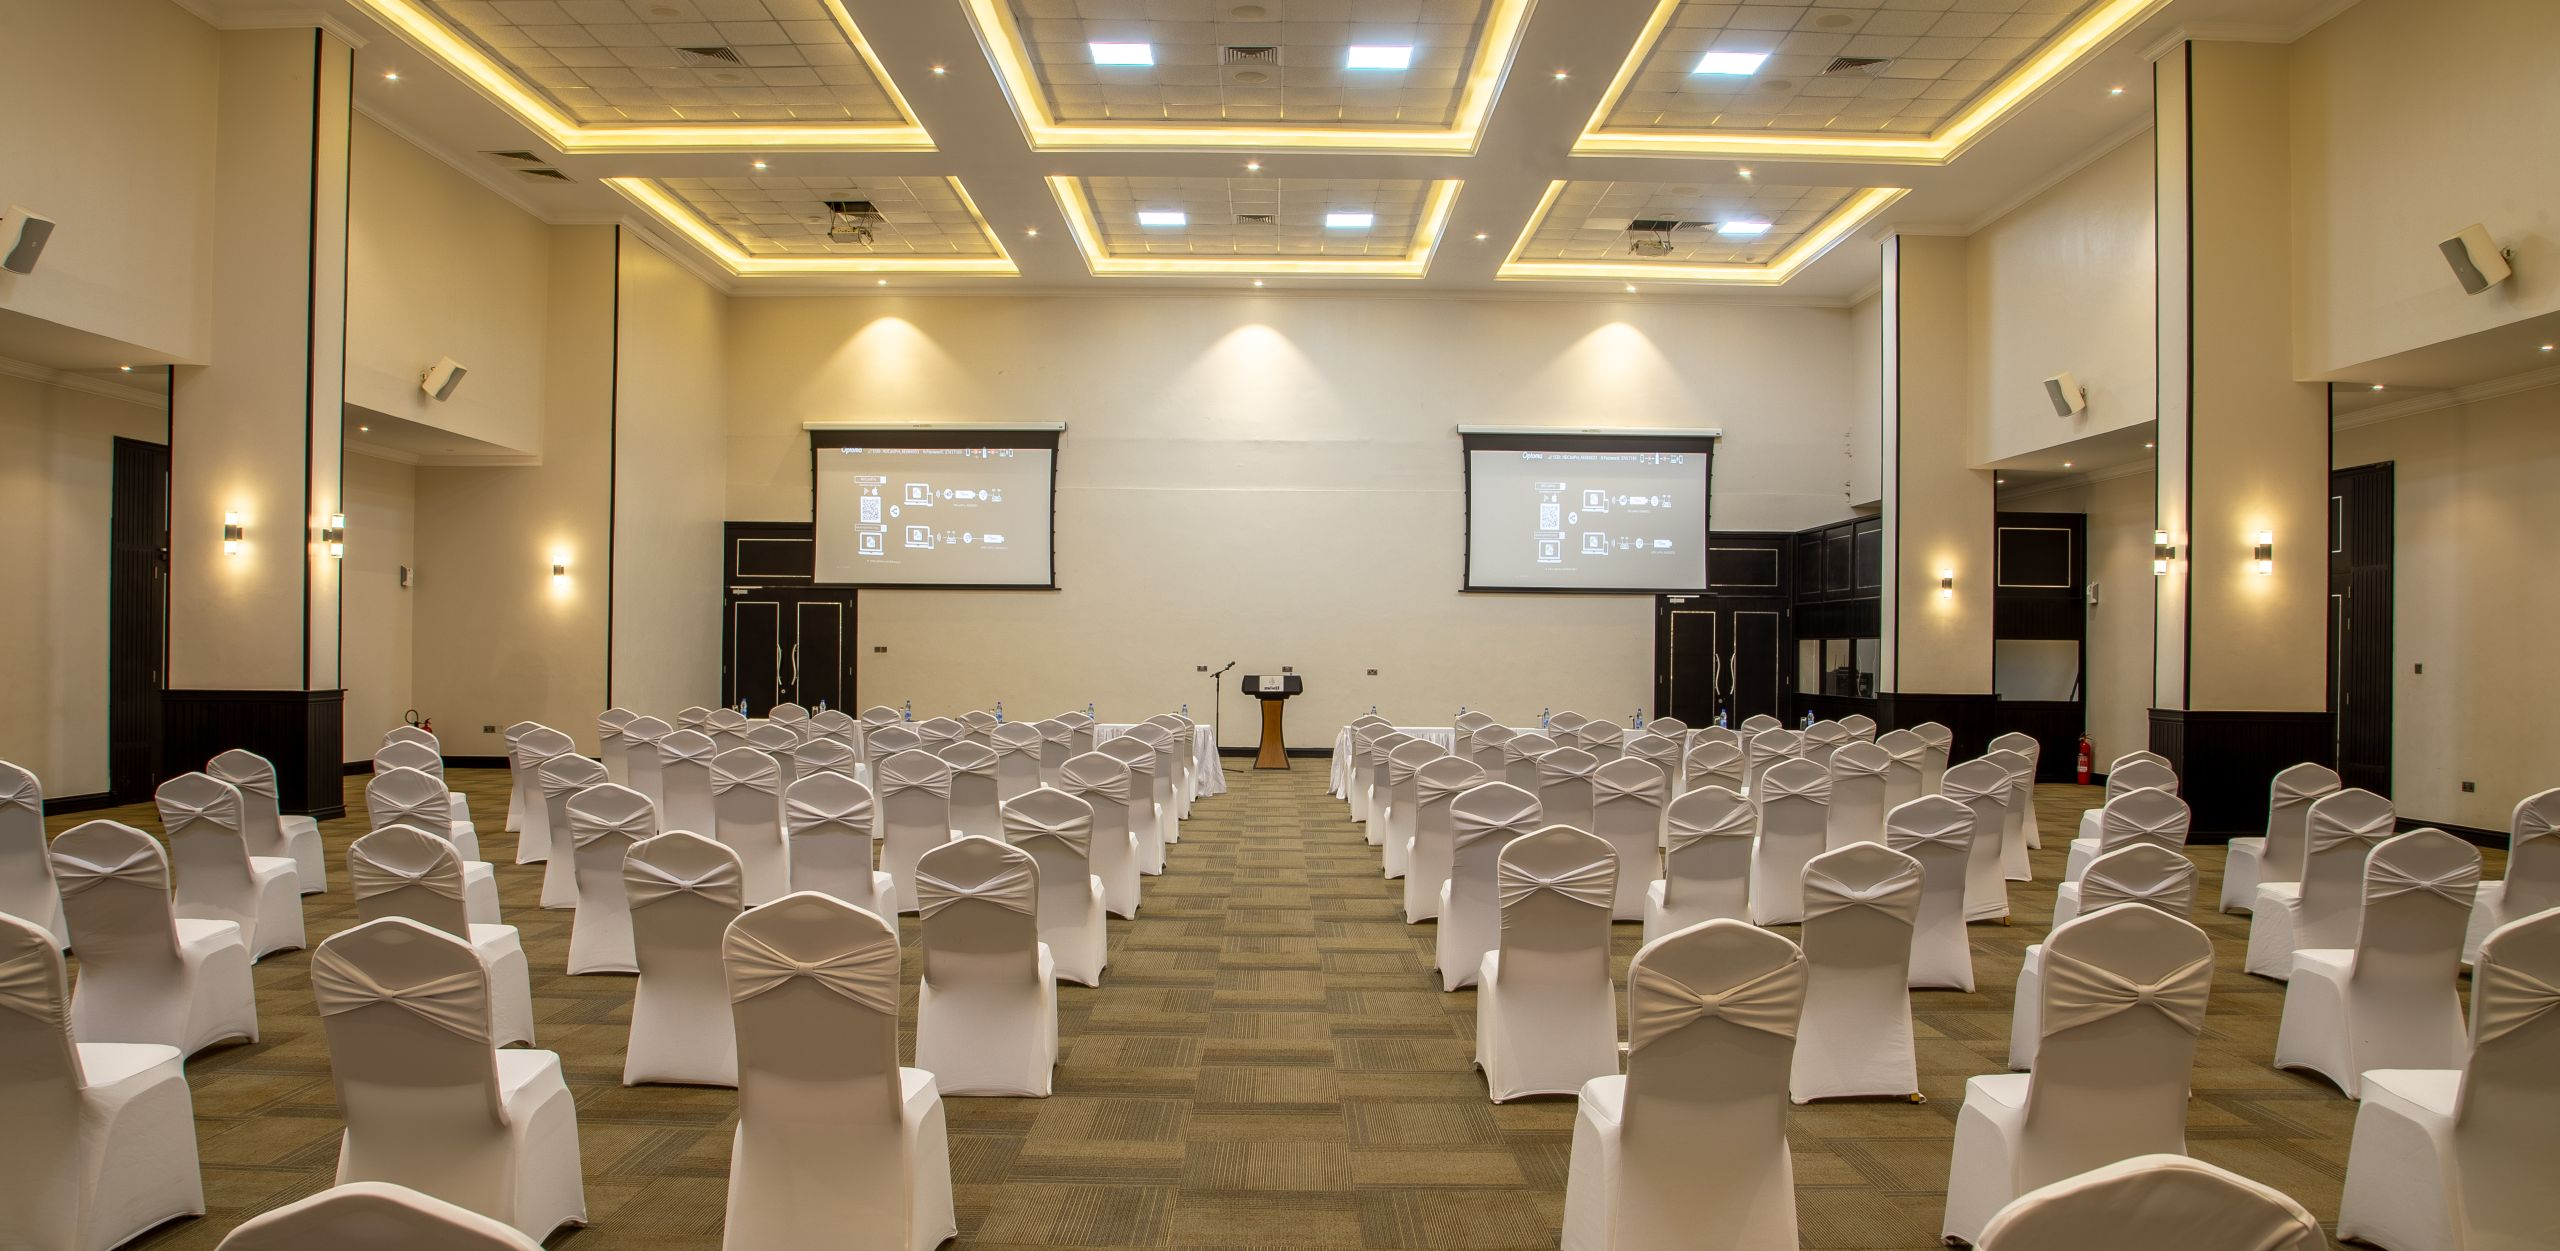 Homepage 2: Event room